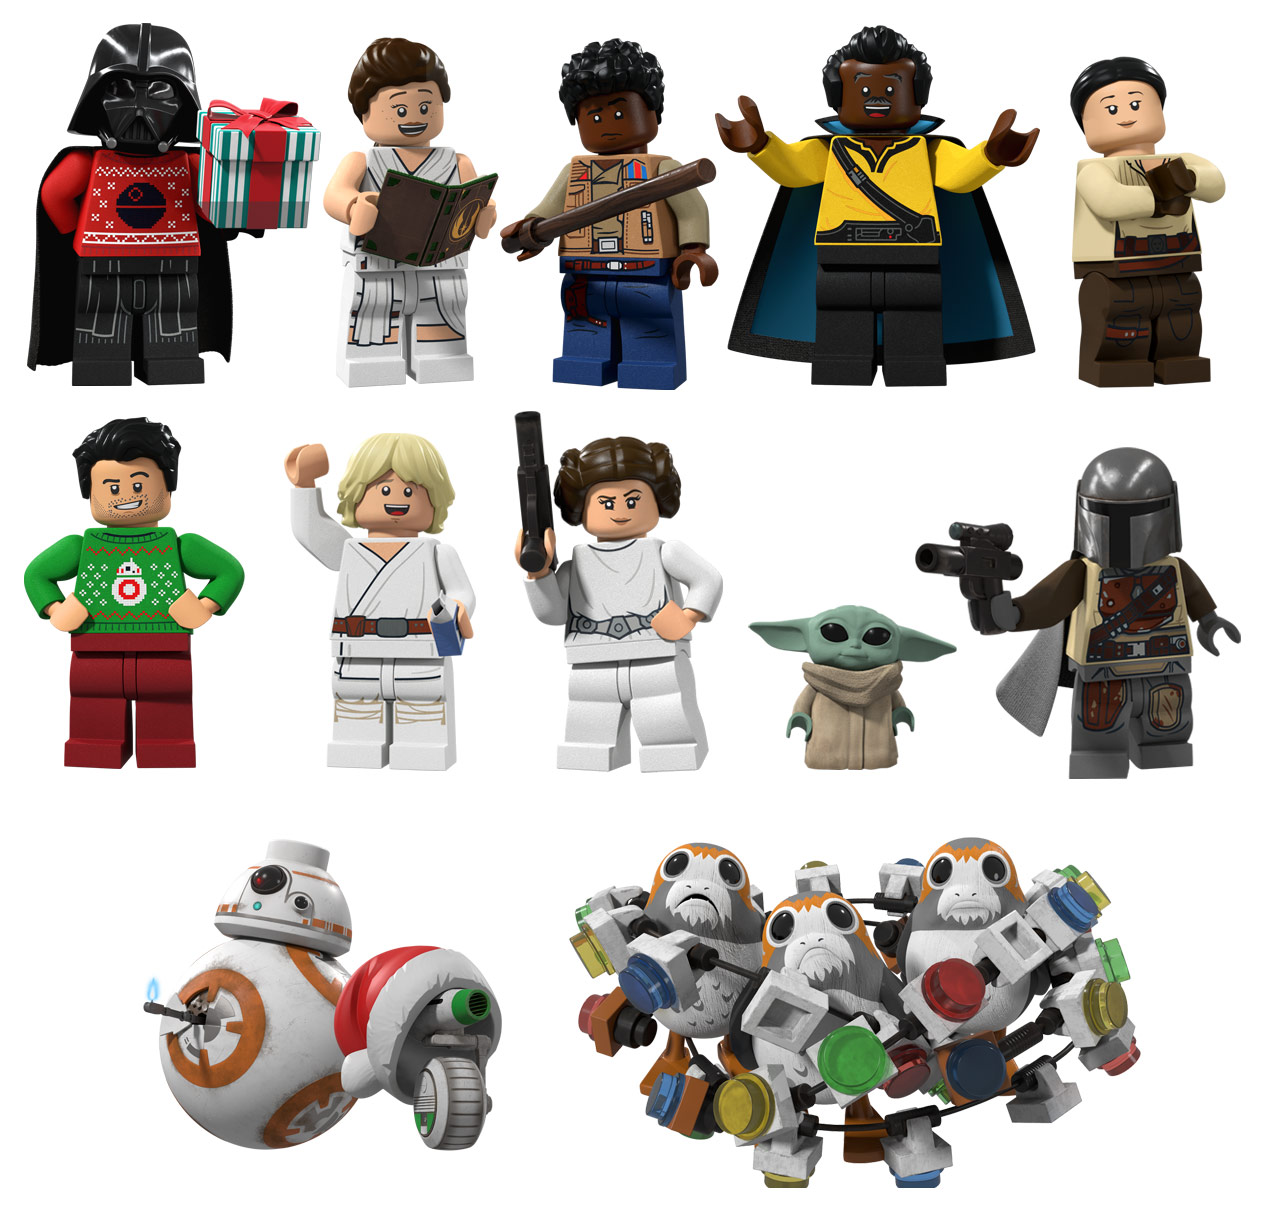 LEGO Star Wars Holiday Special stickers